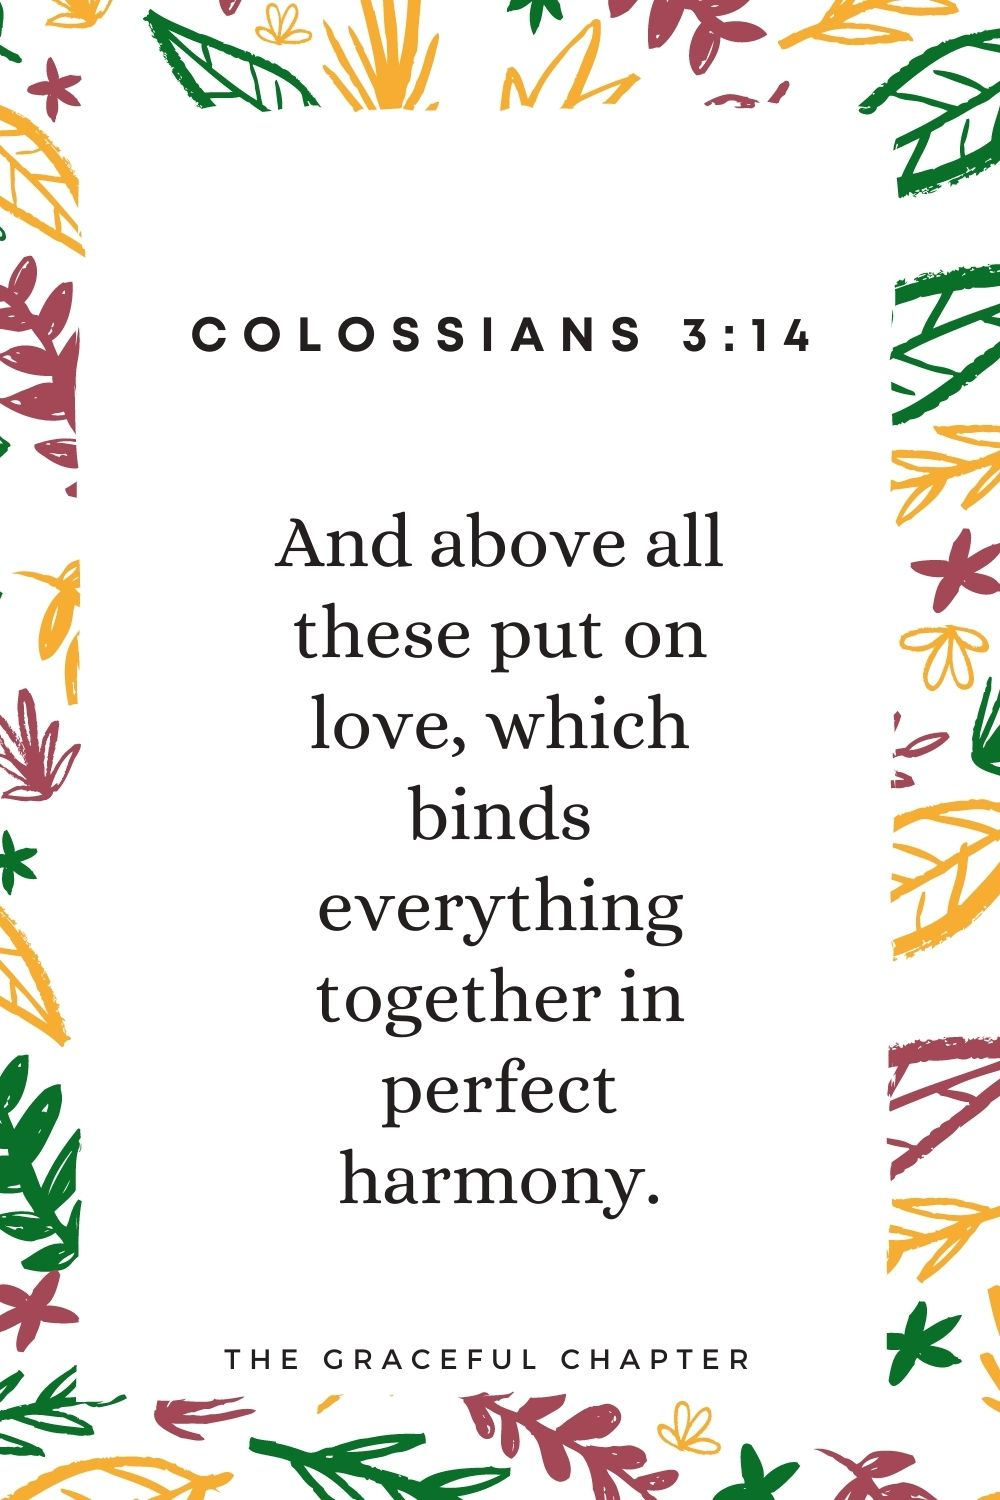 And above all these put on love, which binds everything together in perfect harmony. Colossians 3:14